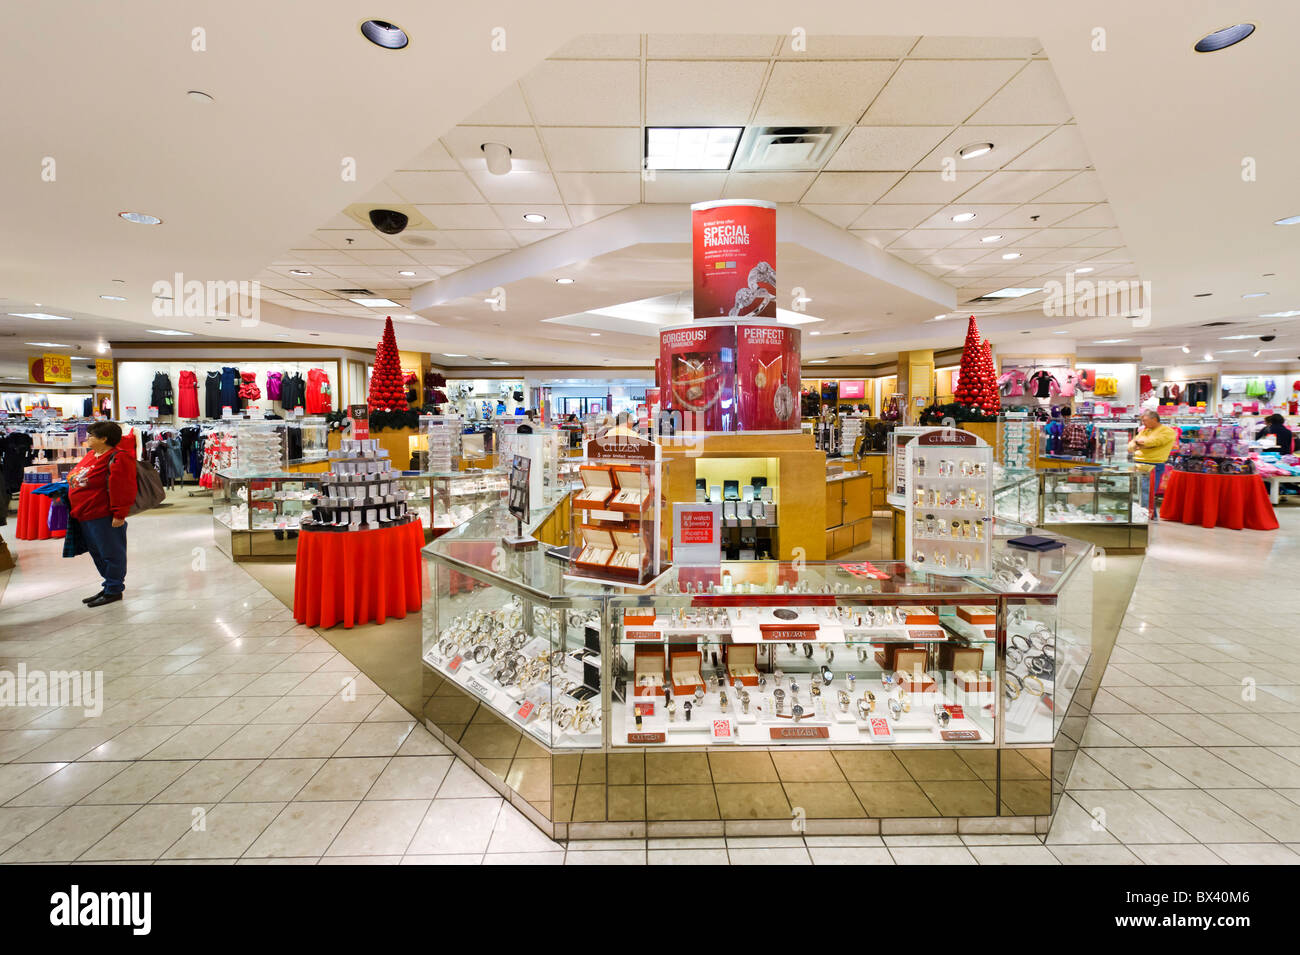 J. C. Penney Company, Inc. one of the nation's largest apparel and home retailers, combines an expansive footprint of over stores across the United States and Puerto Rico with a powerful e-commerce site, herelfilesvj4.cf, to deliver style and value for all hard-working American families.